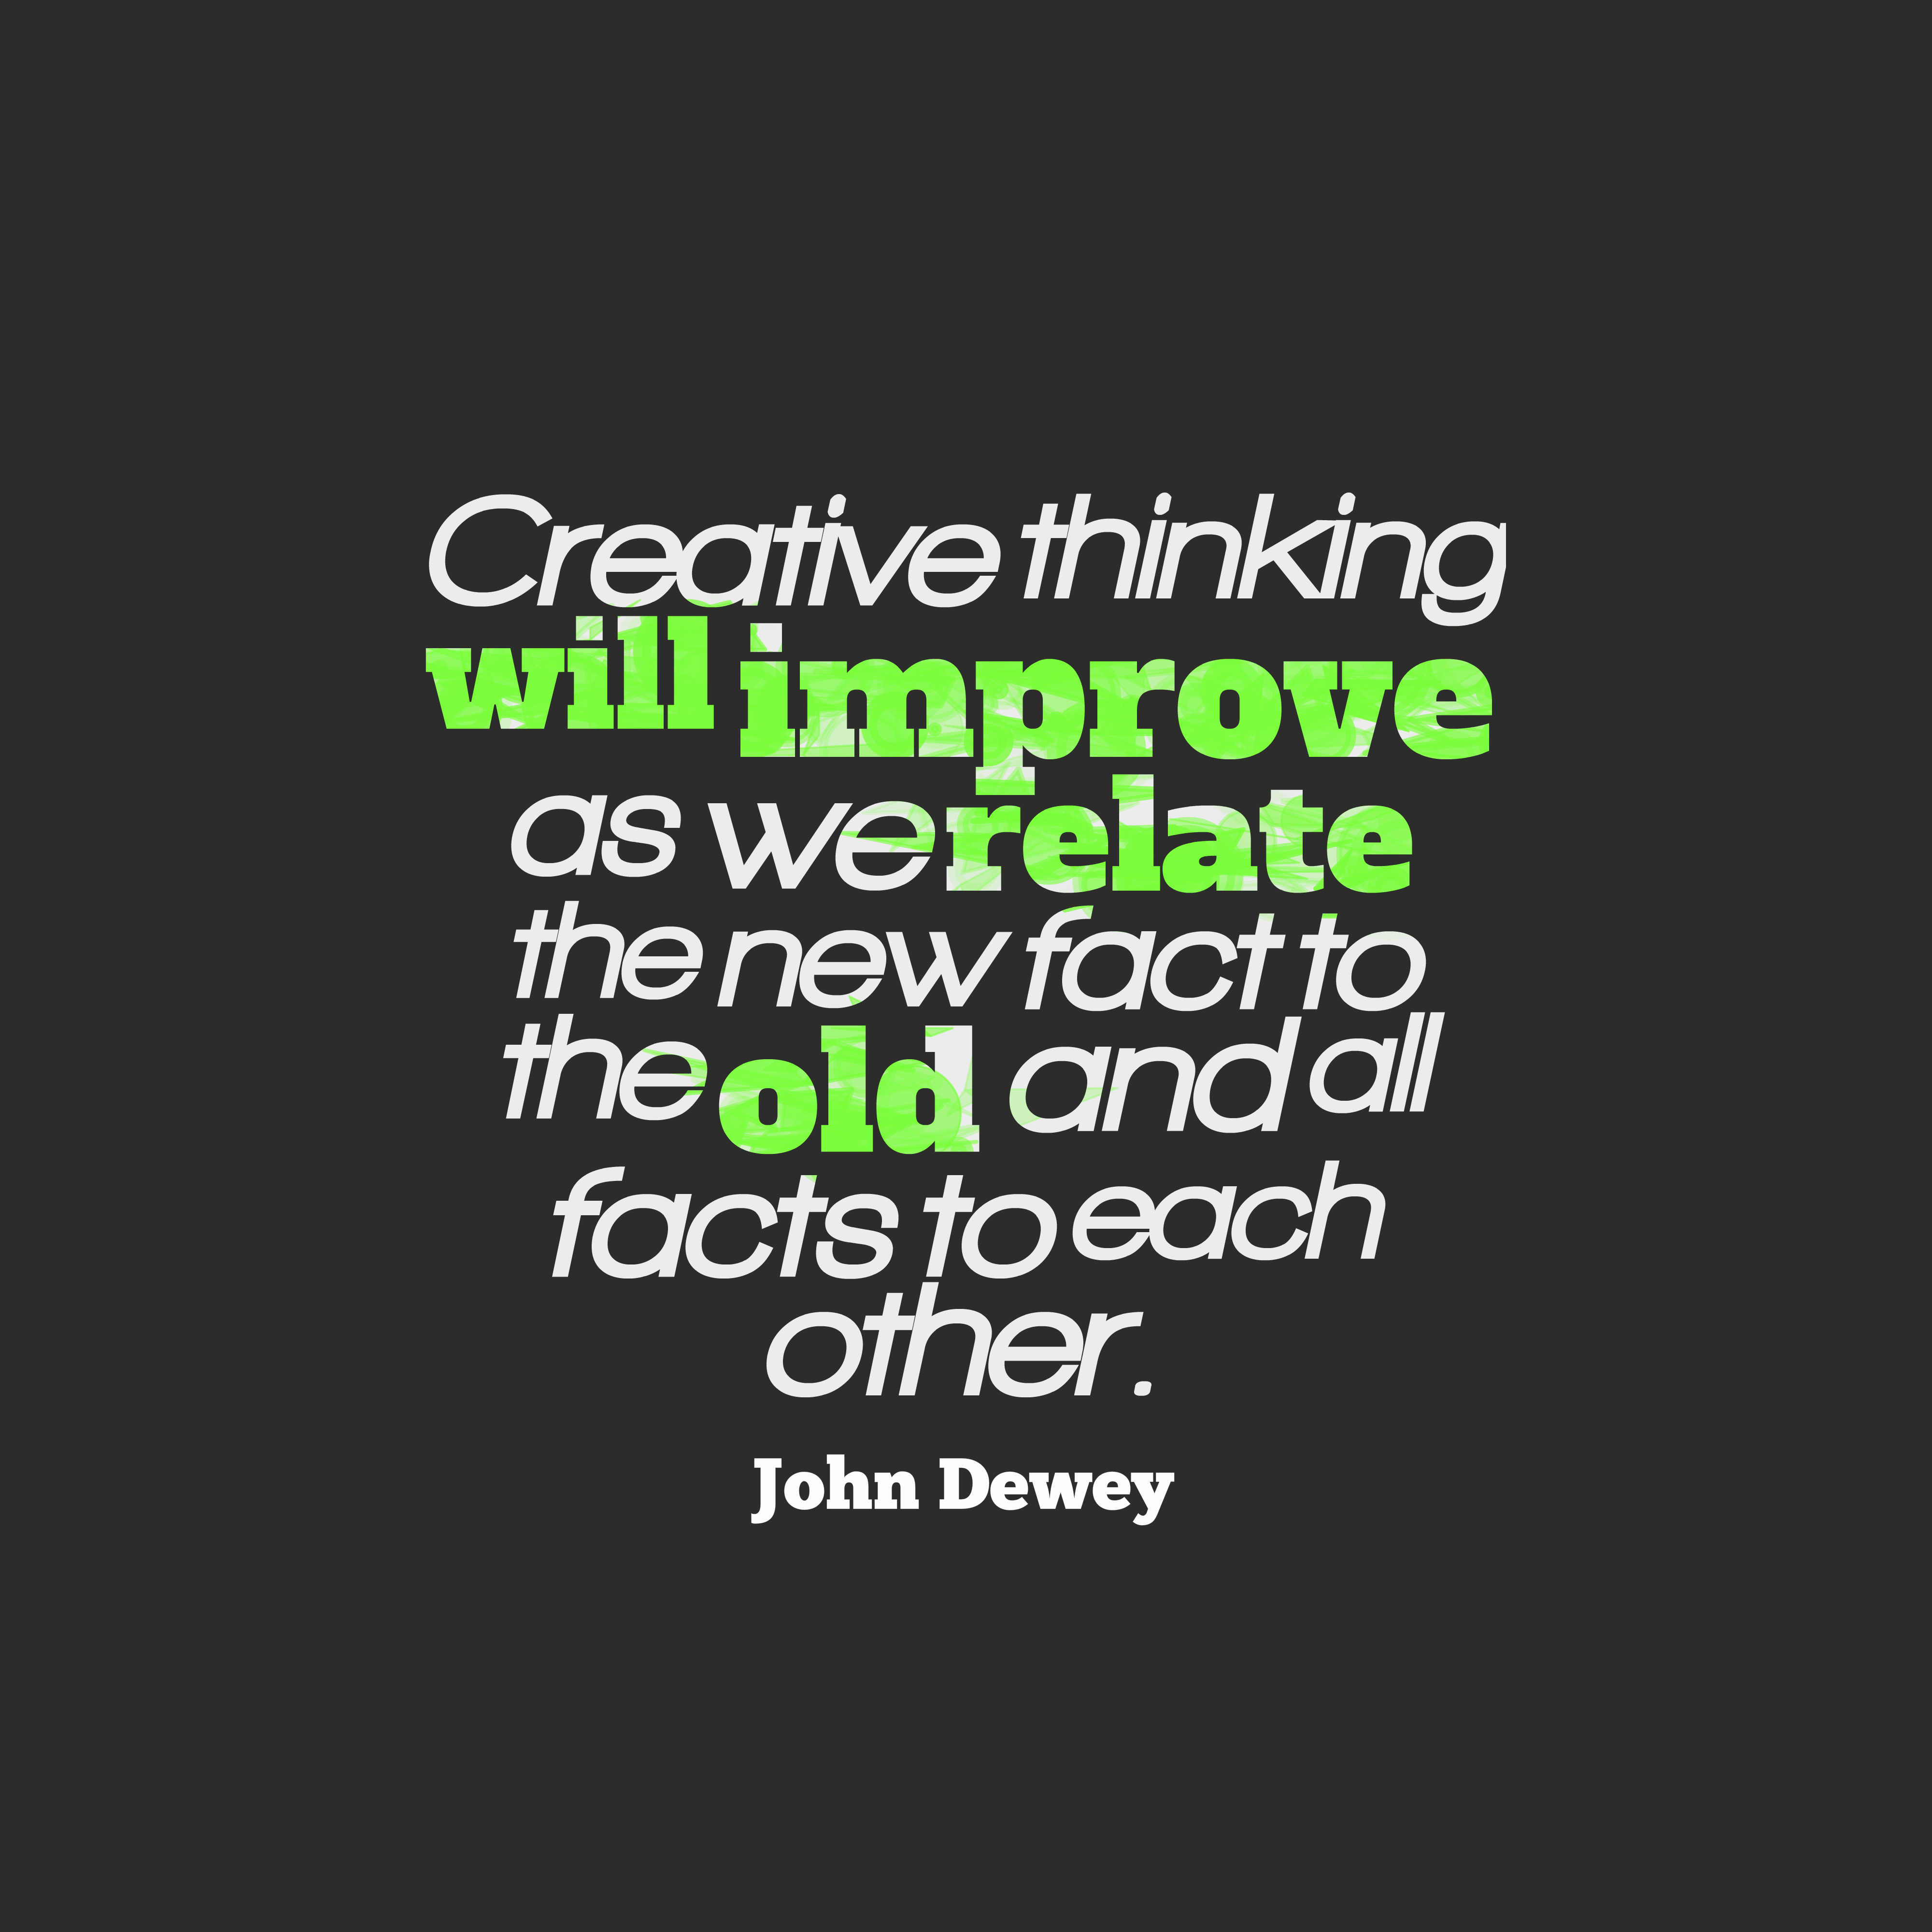 John Dewey Quote About Fact